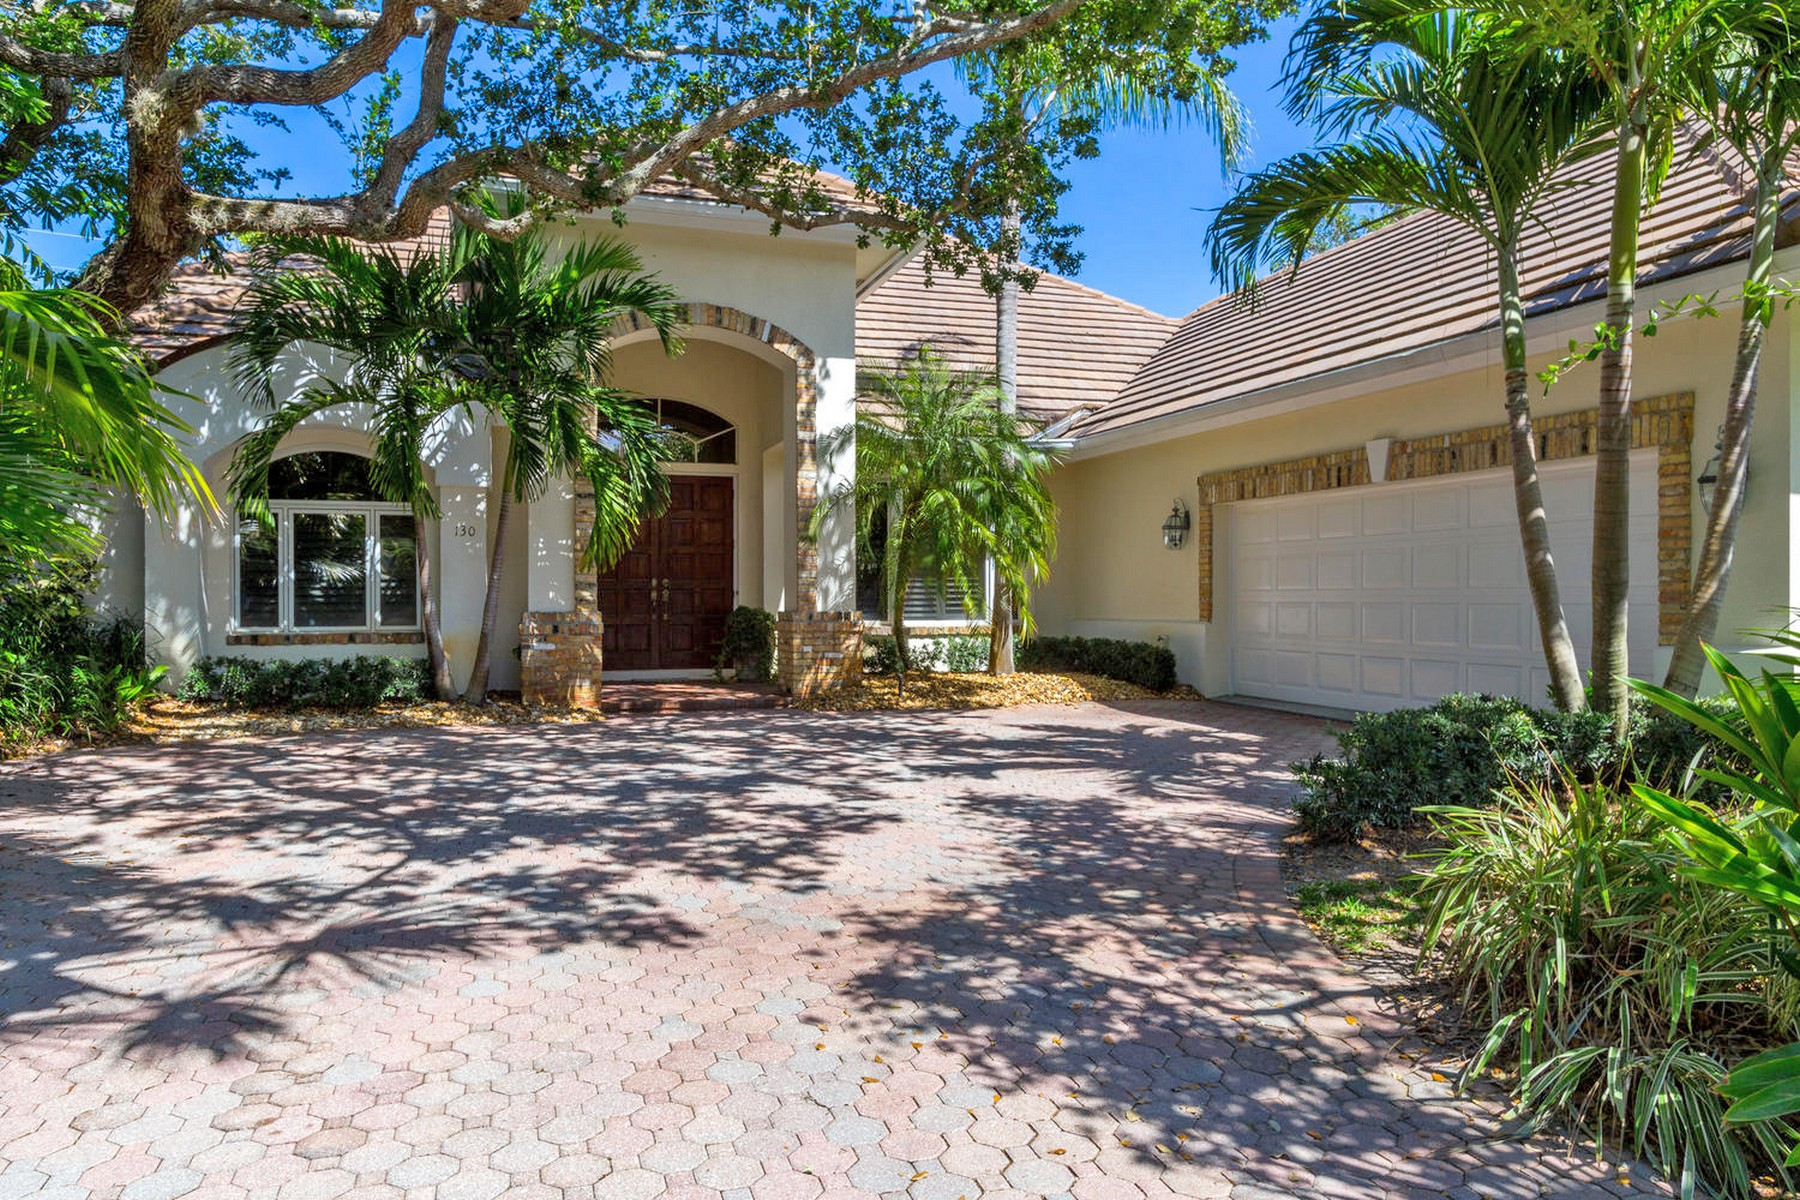 Casa Unifamiliar por un Venta en Indian River Shores Gem 130 N White Jewel Court Vero Beach, Florida, 32963 Estados Unidos